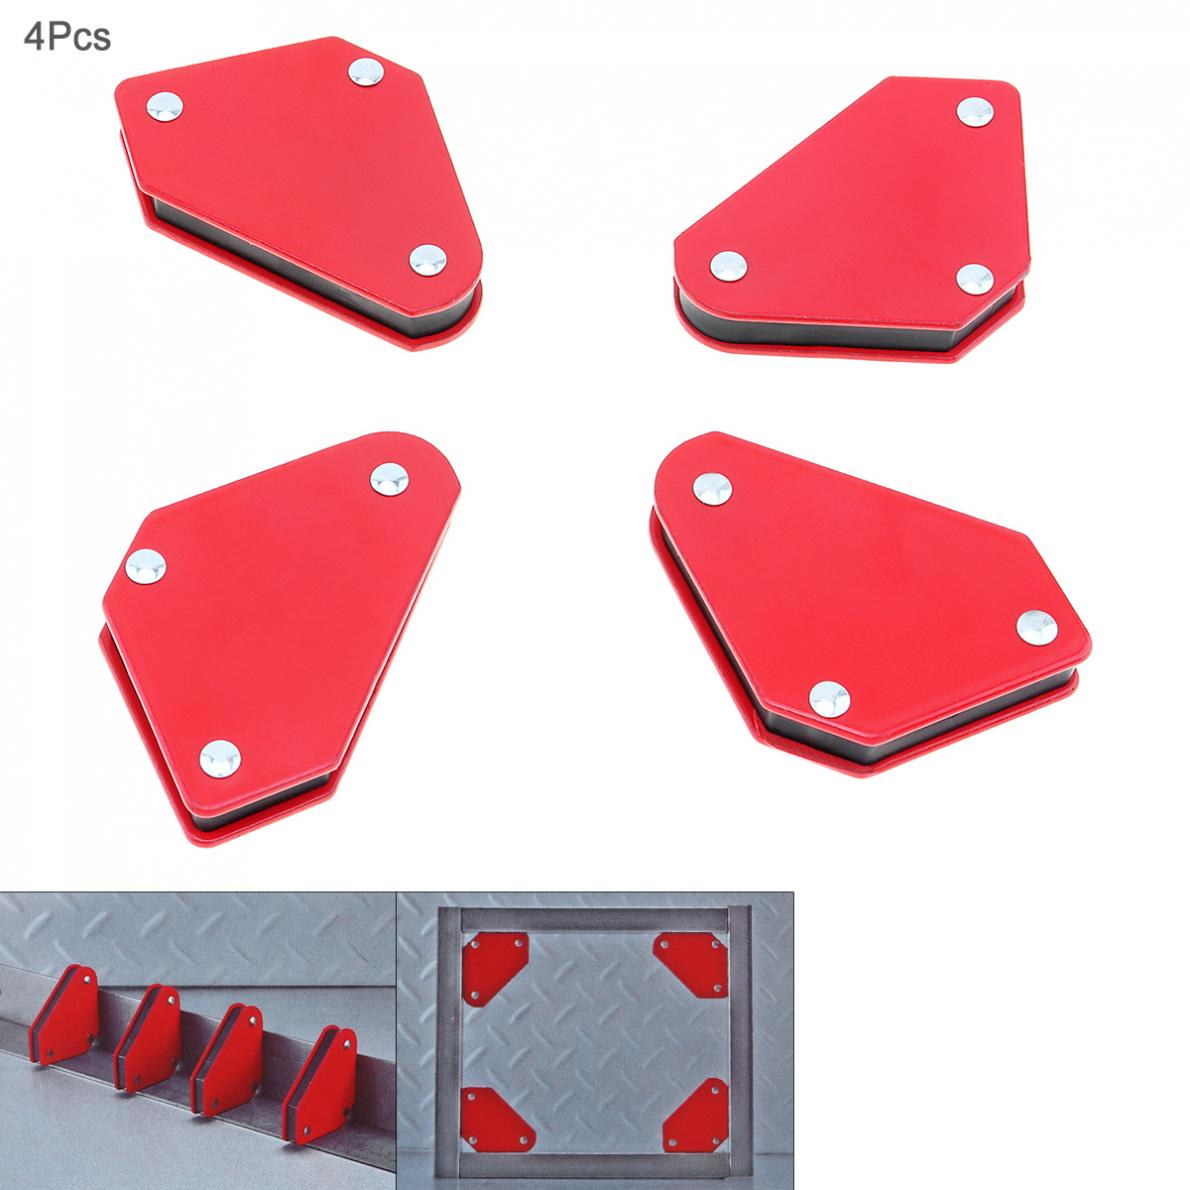 4 Pcs/lot Triangle Welding Positioner Without Switch 9Lb Magnetic Fixed Angle Soldering Locator Tools